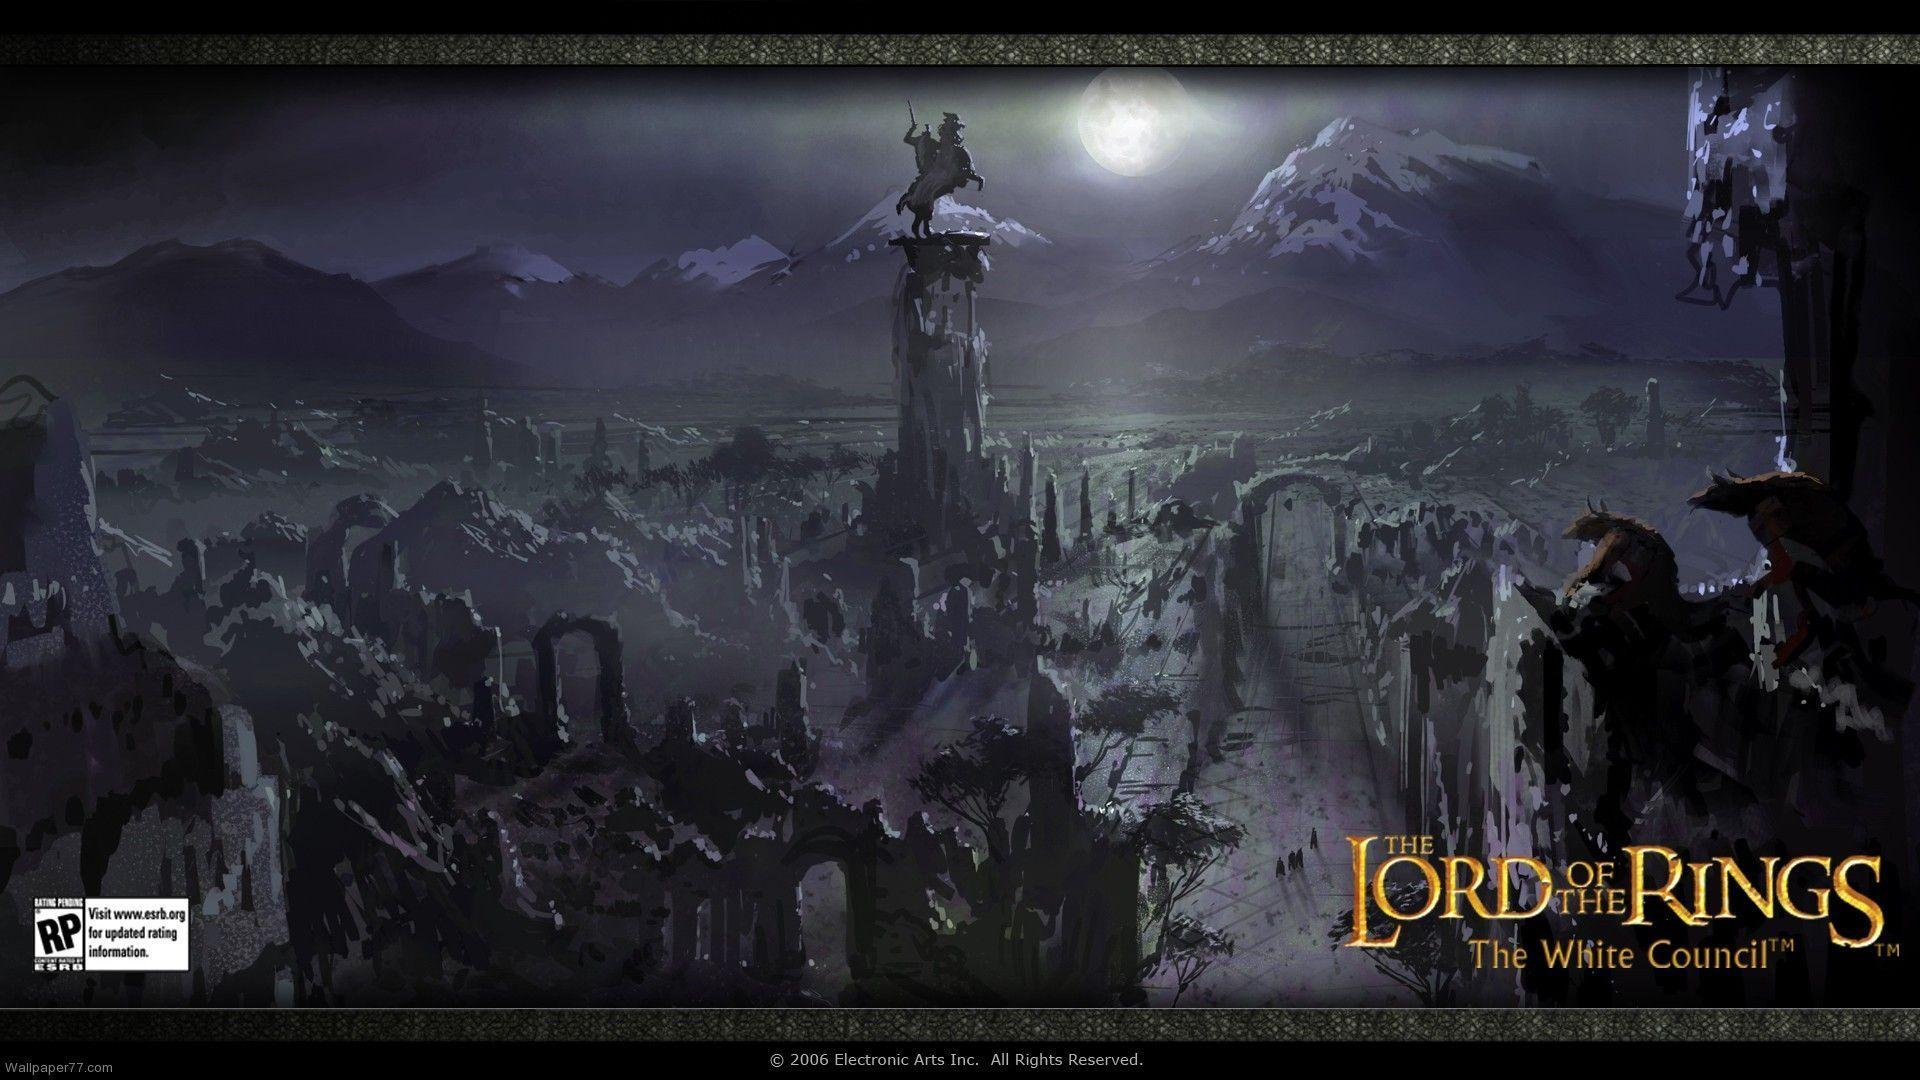 Lord of the Rings Wallpapers 4, 1920x1080 pixels : Wallpapers